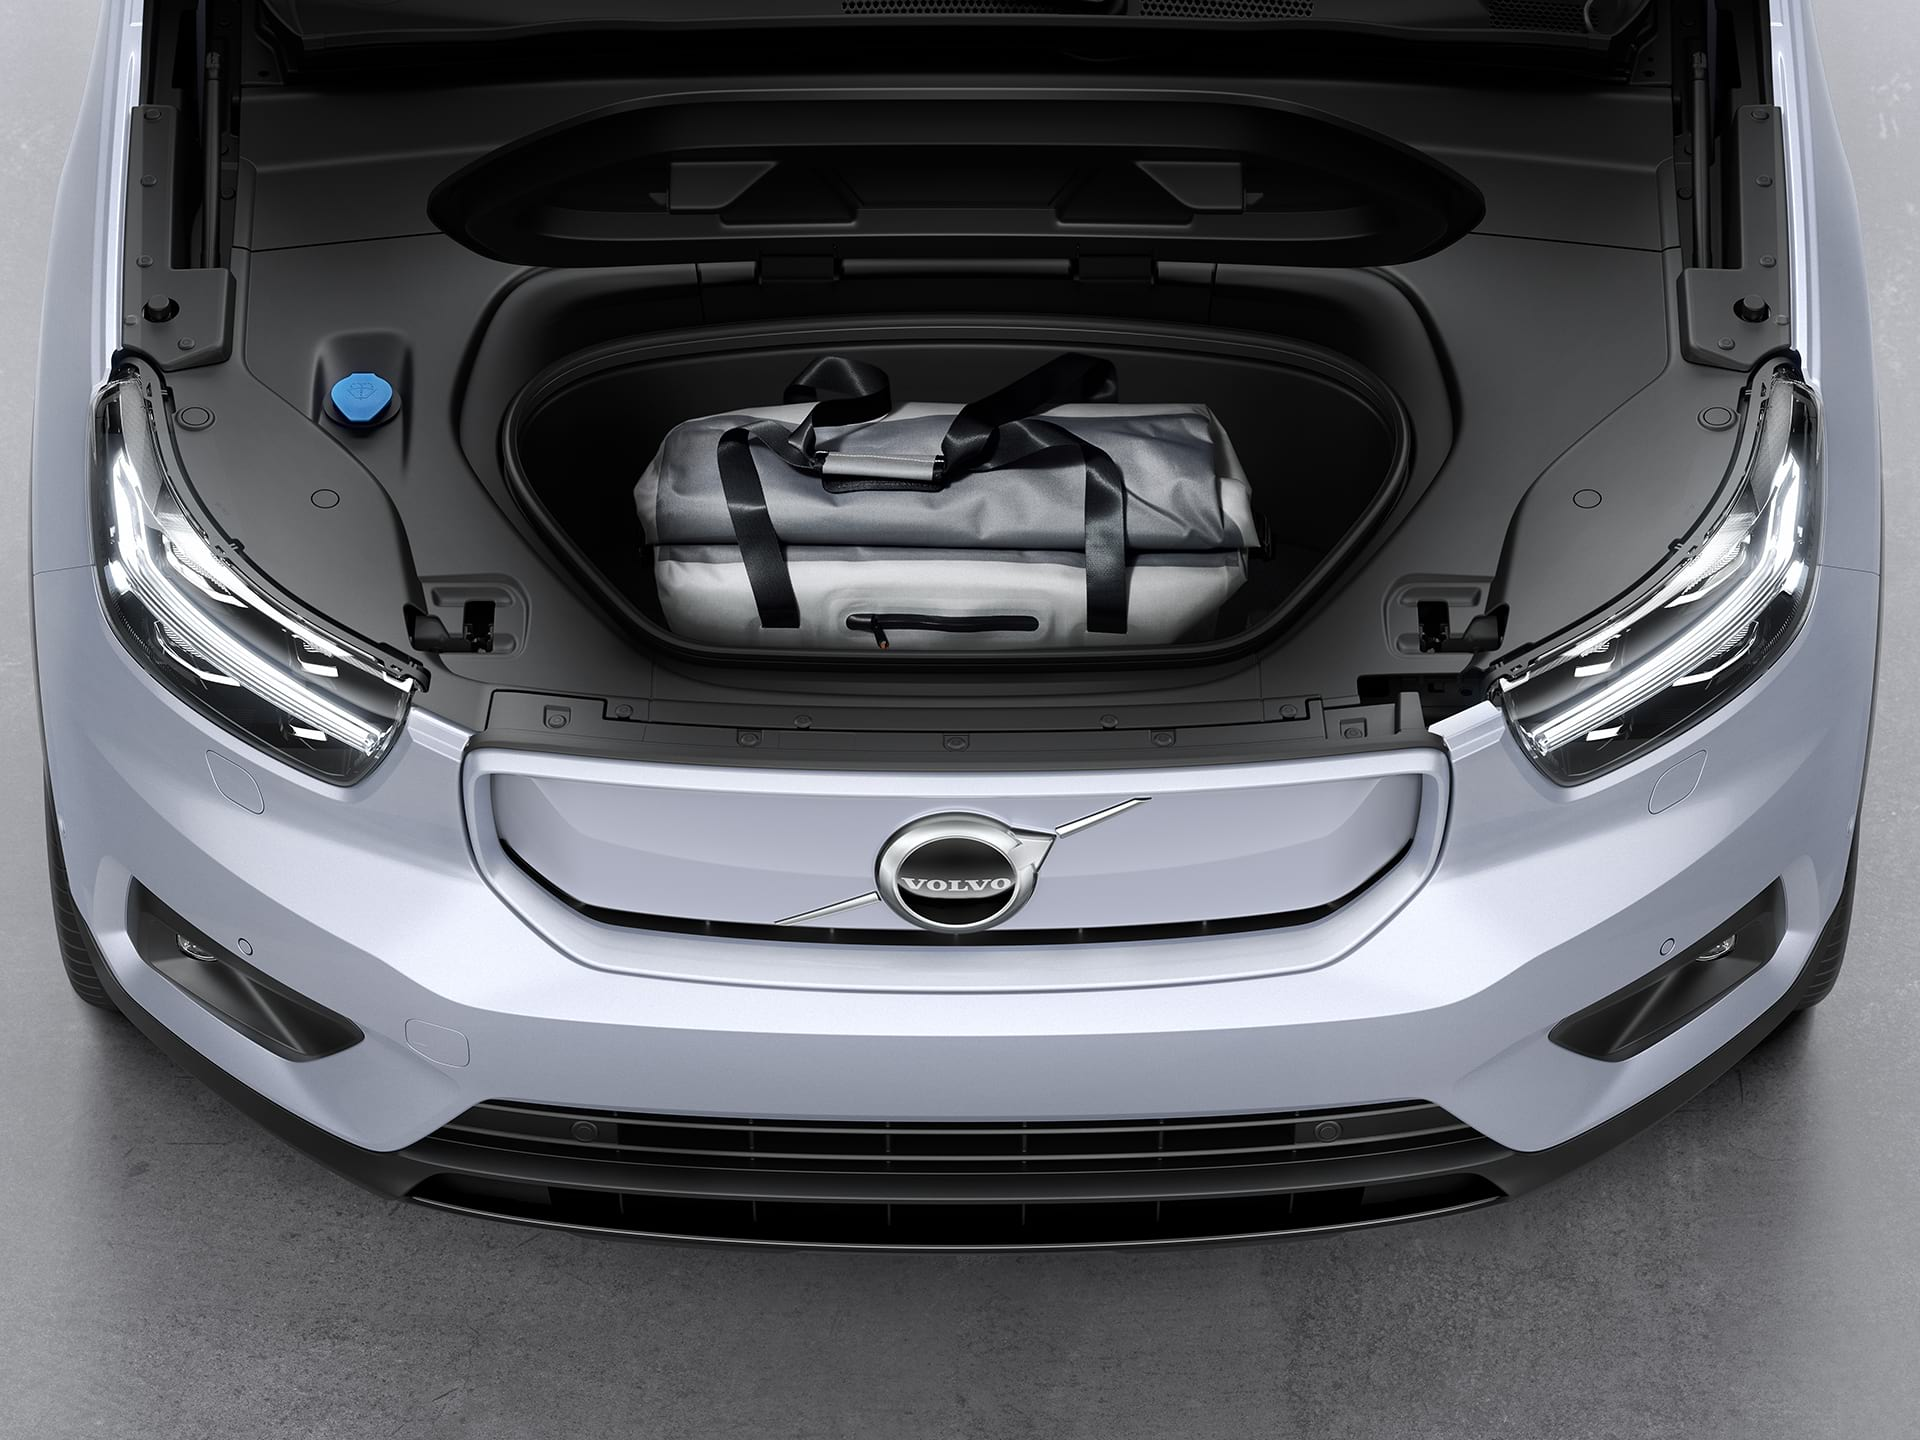 The front compartment of the Volvo XC40 Recharge packed with a sports bag.